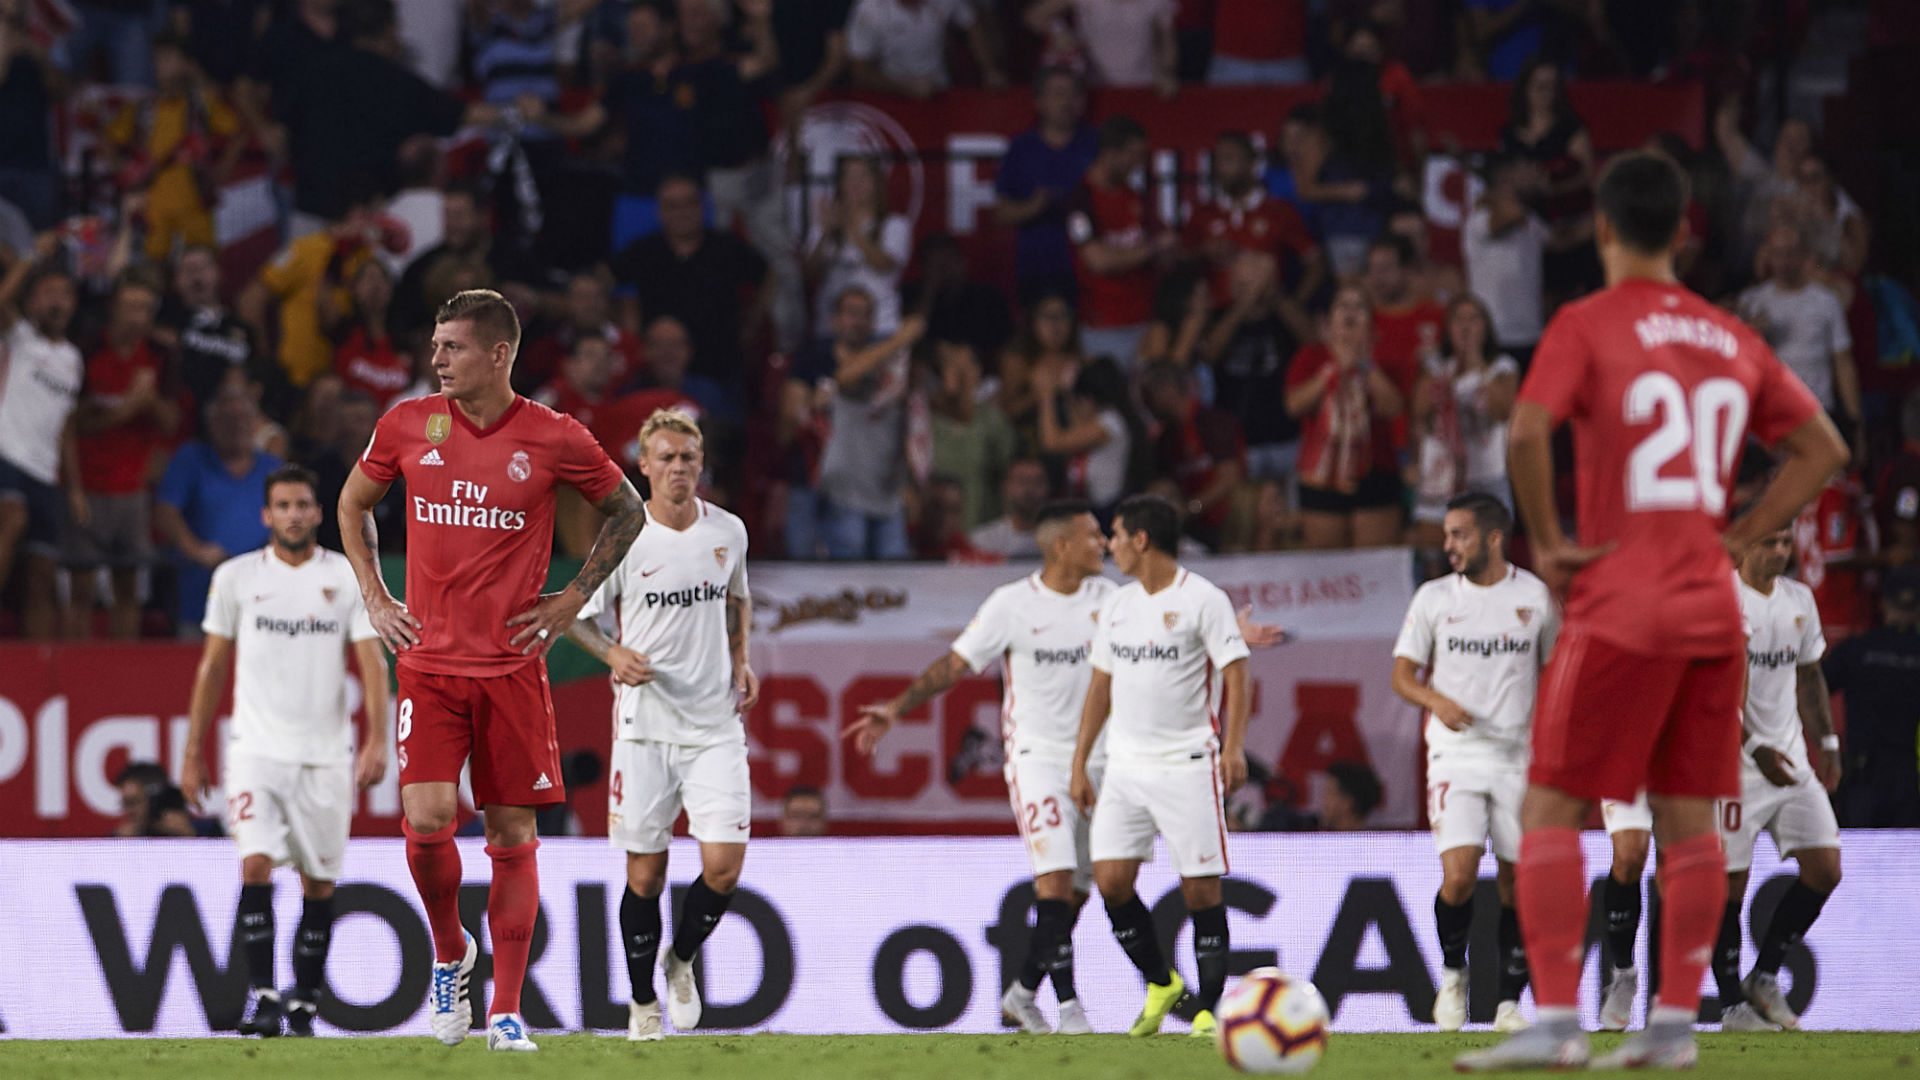 Julen Lopetegui: Sevilla were superior to Real Madrid